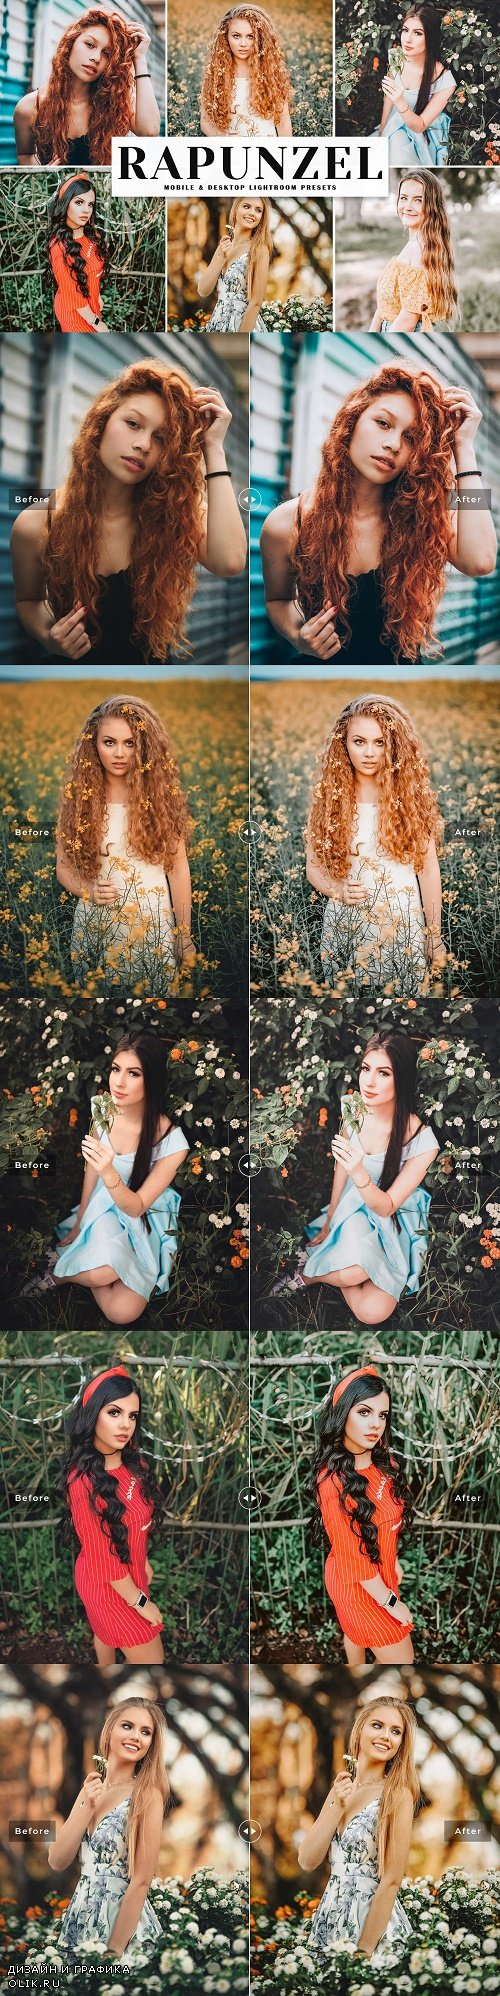 Rapunzel Lightroom Presets Pack - 4195854